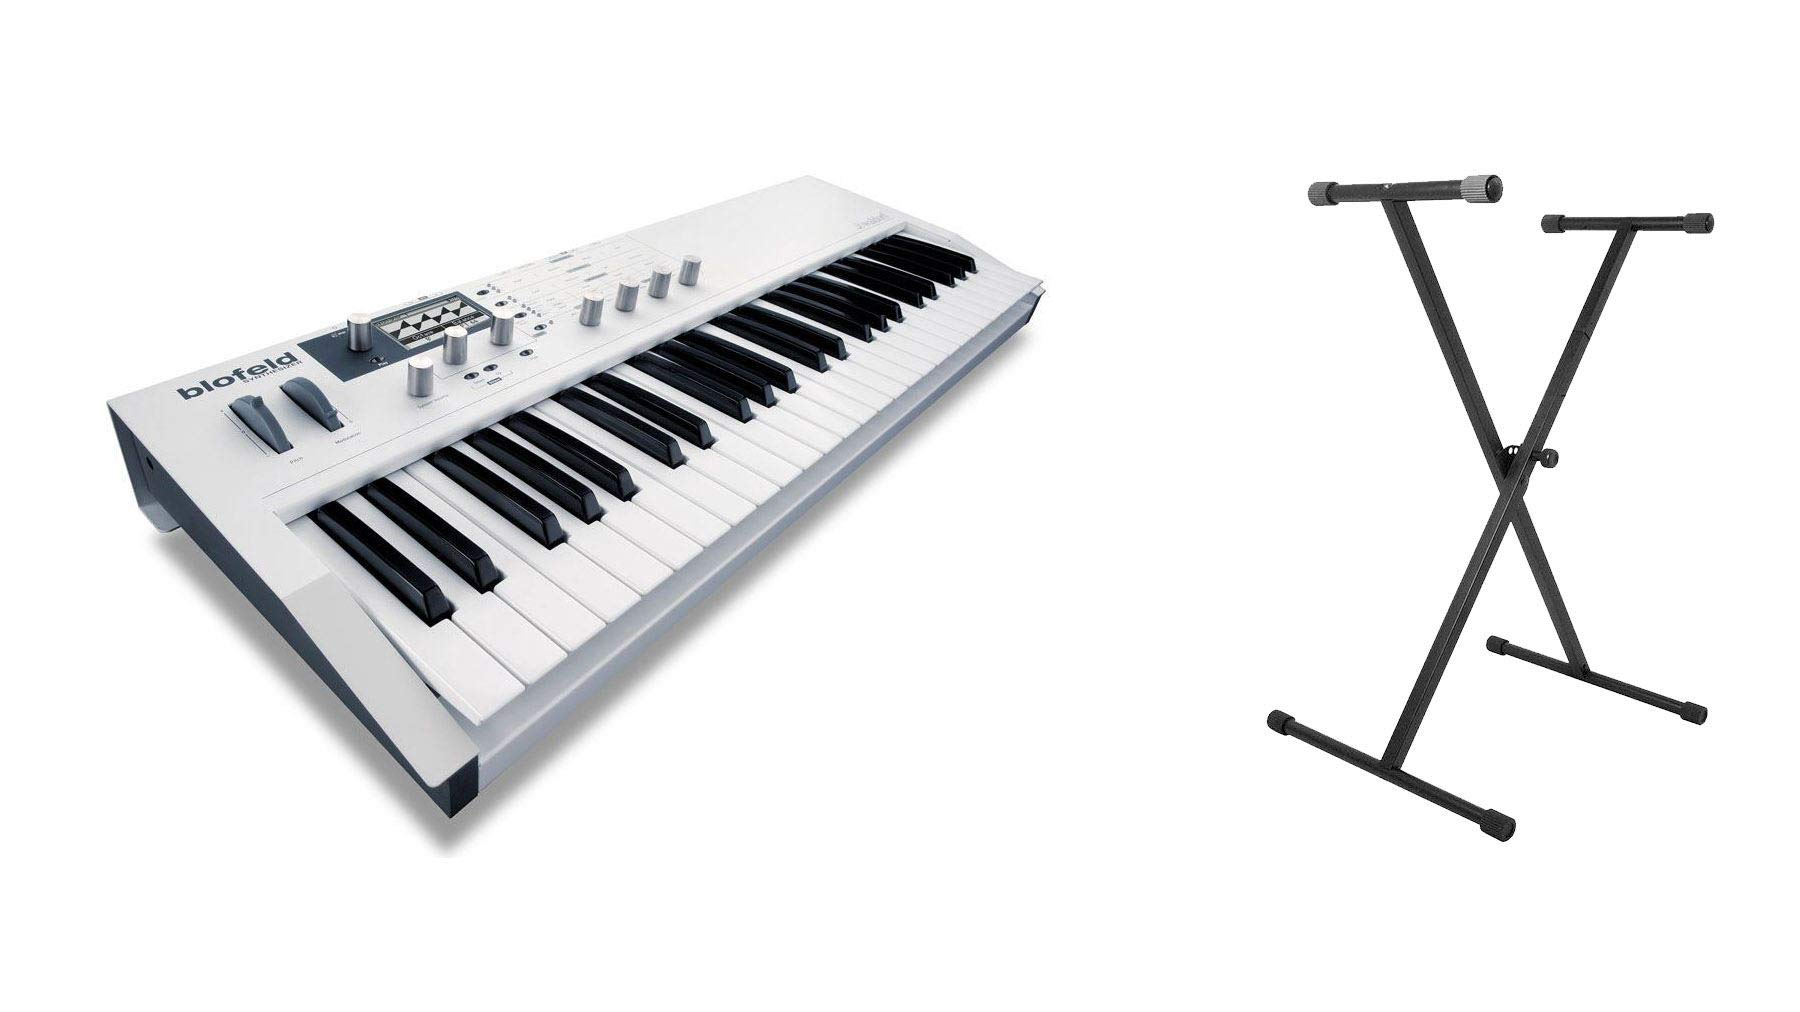 Waldorf White Blofeld Synthesizer Keyboard Bundle with On-Stage KS7190 Classic Single-X Keyboard Stand (2 Items)